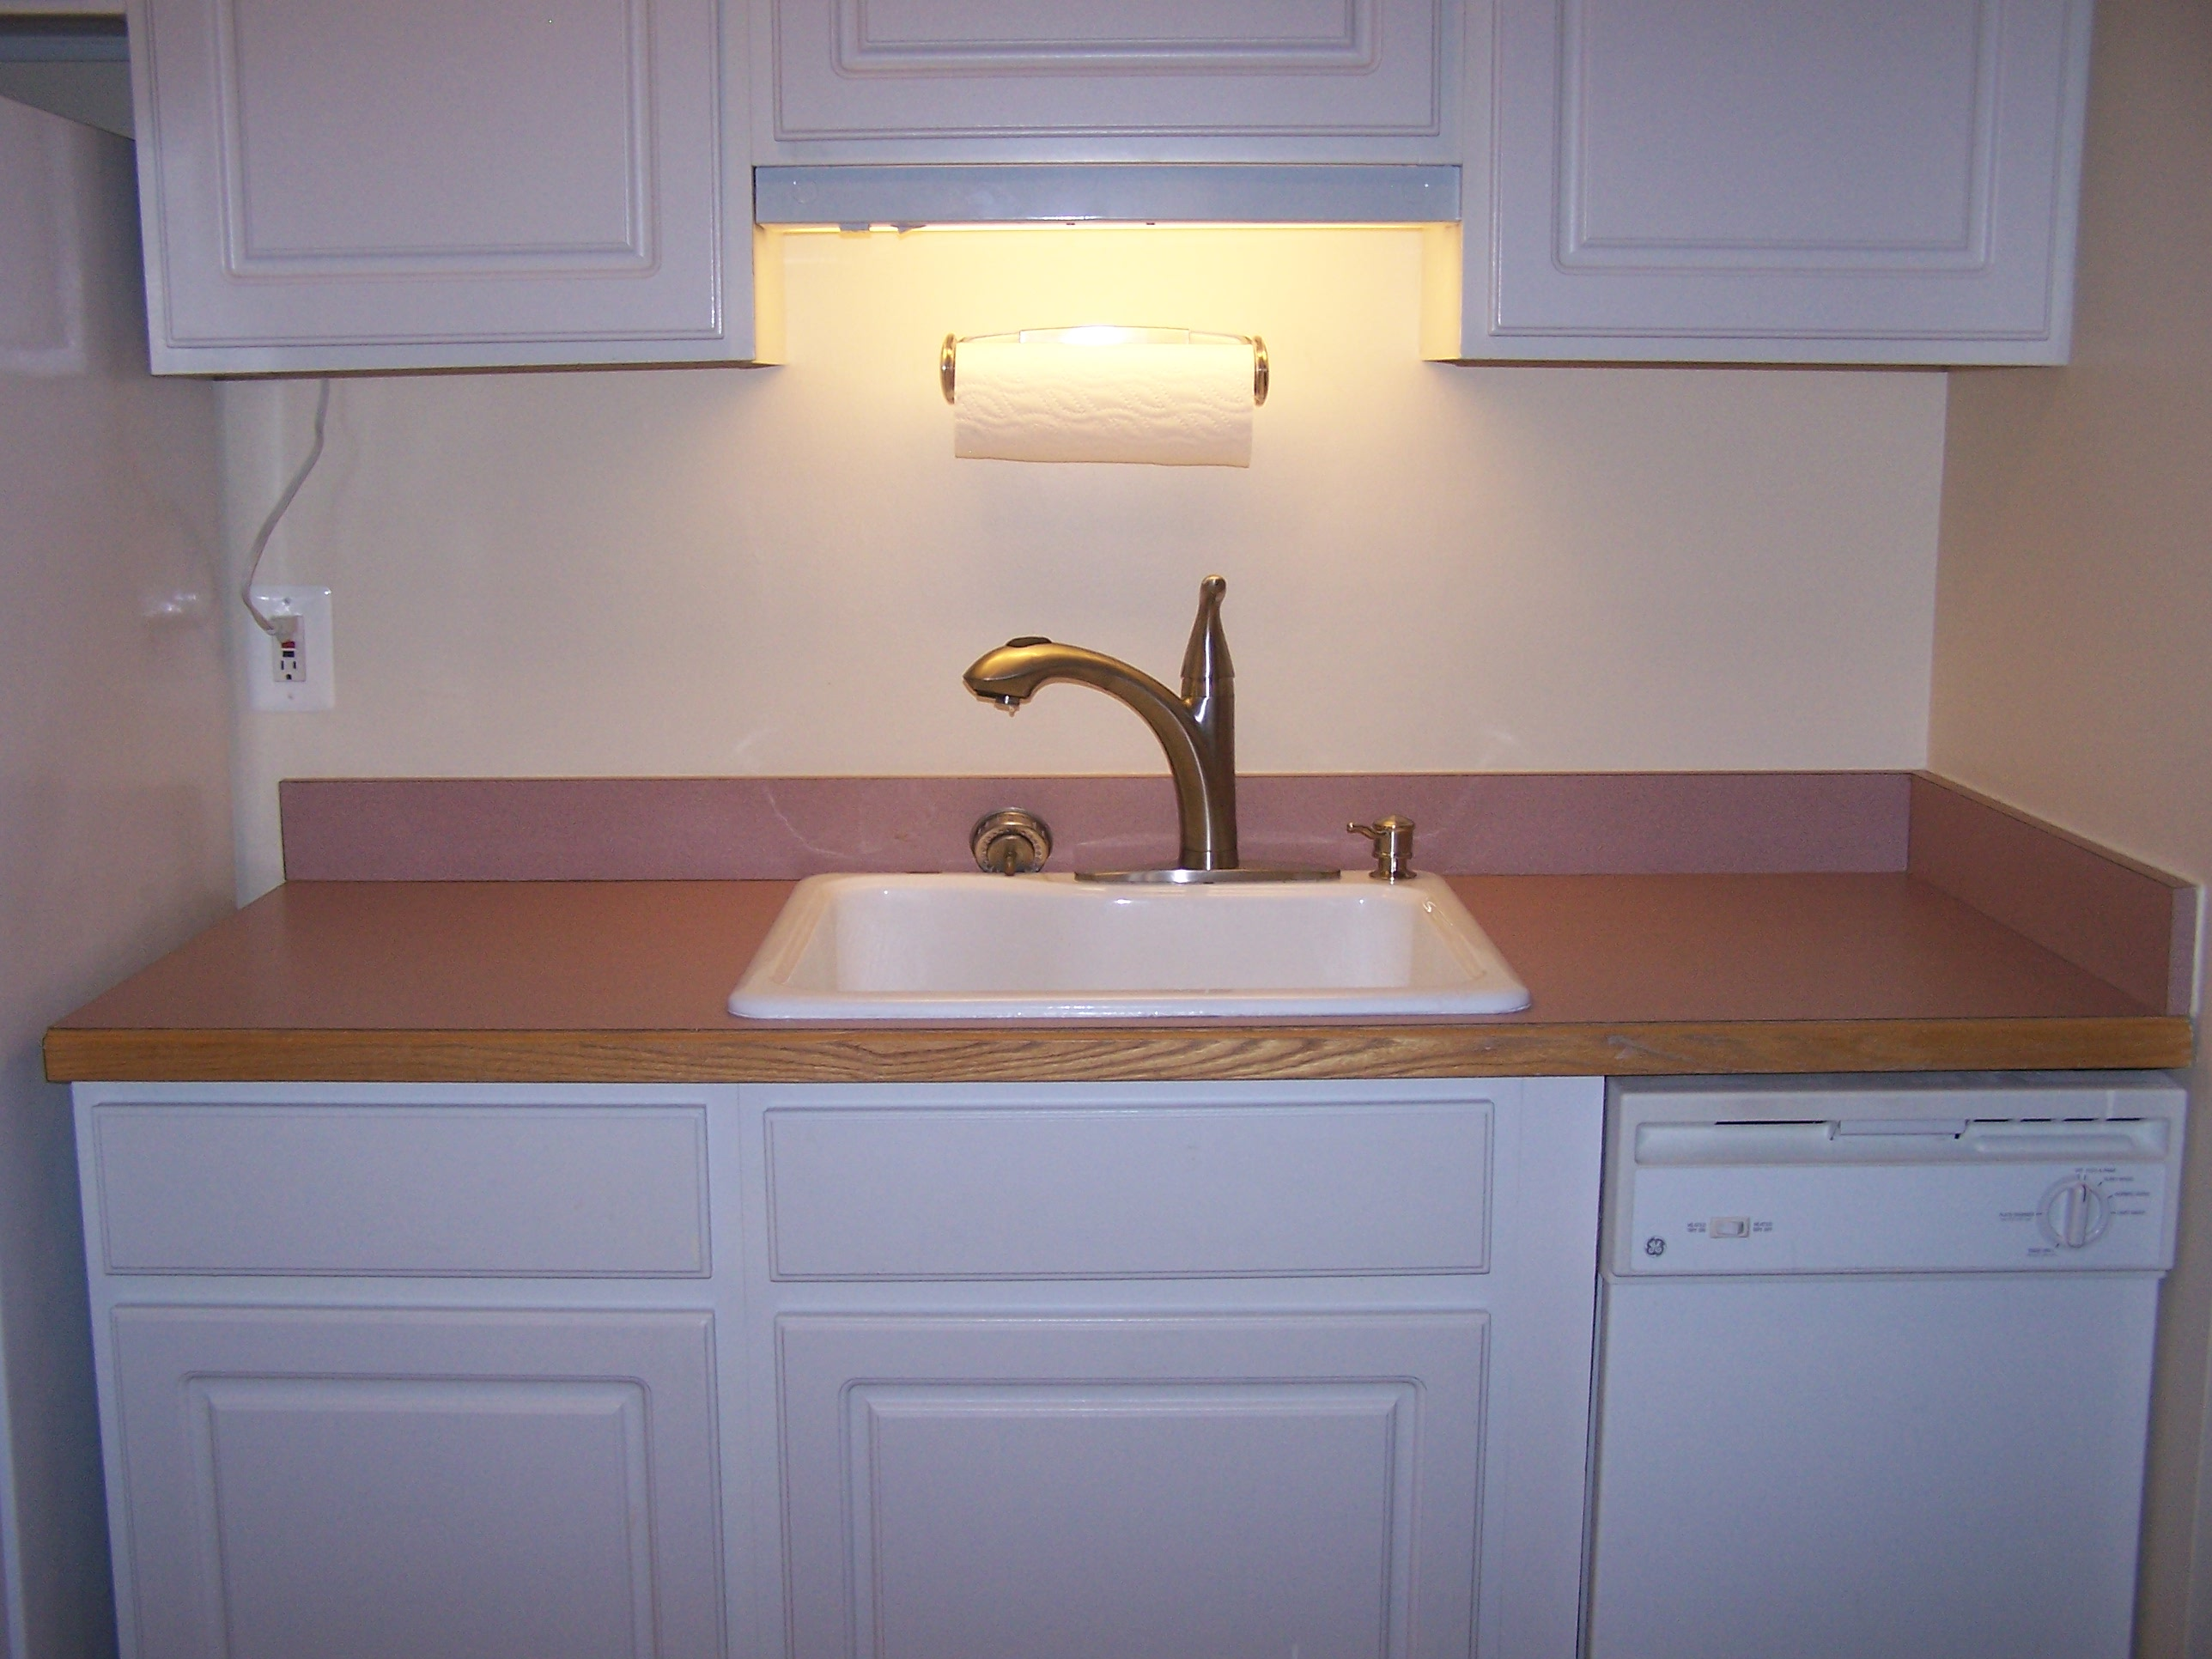 Kitchen Faucet Replacement STG style-100_1428.jpg